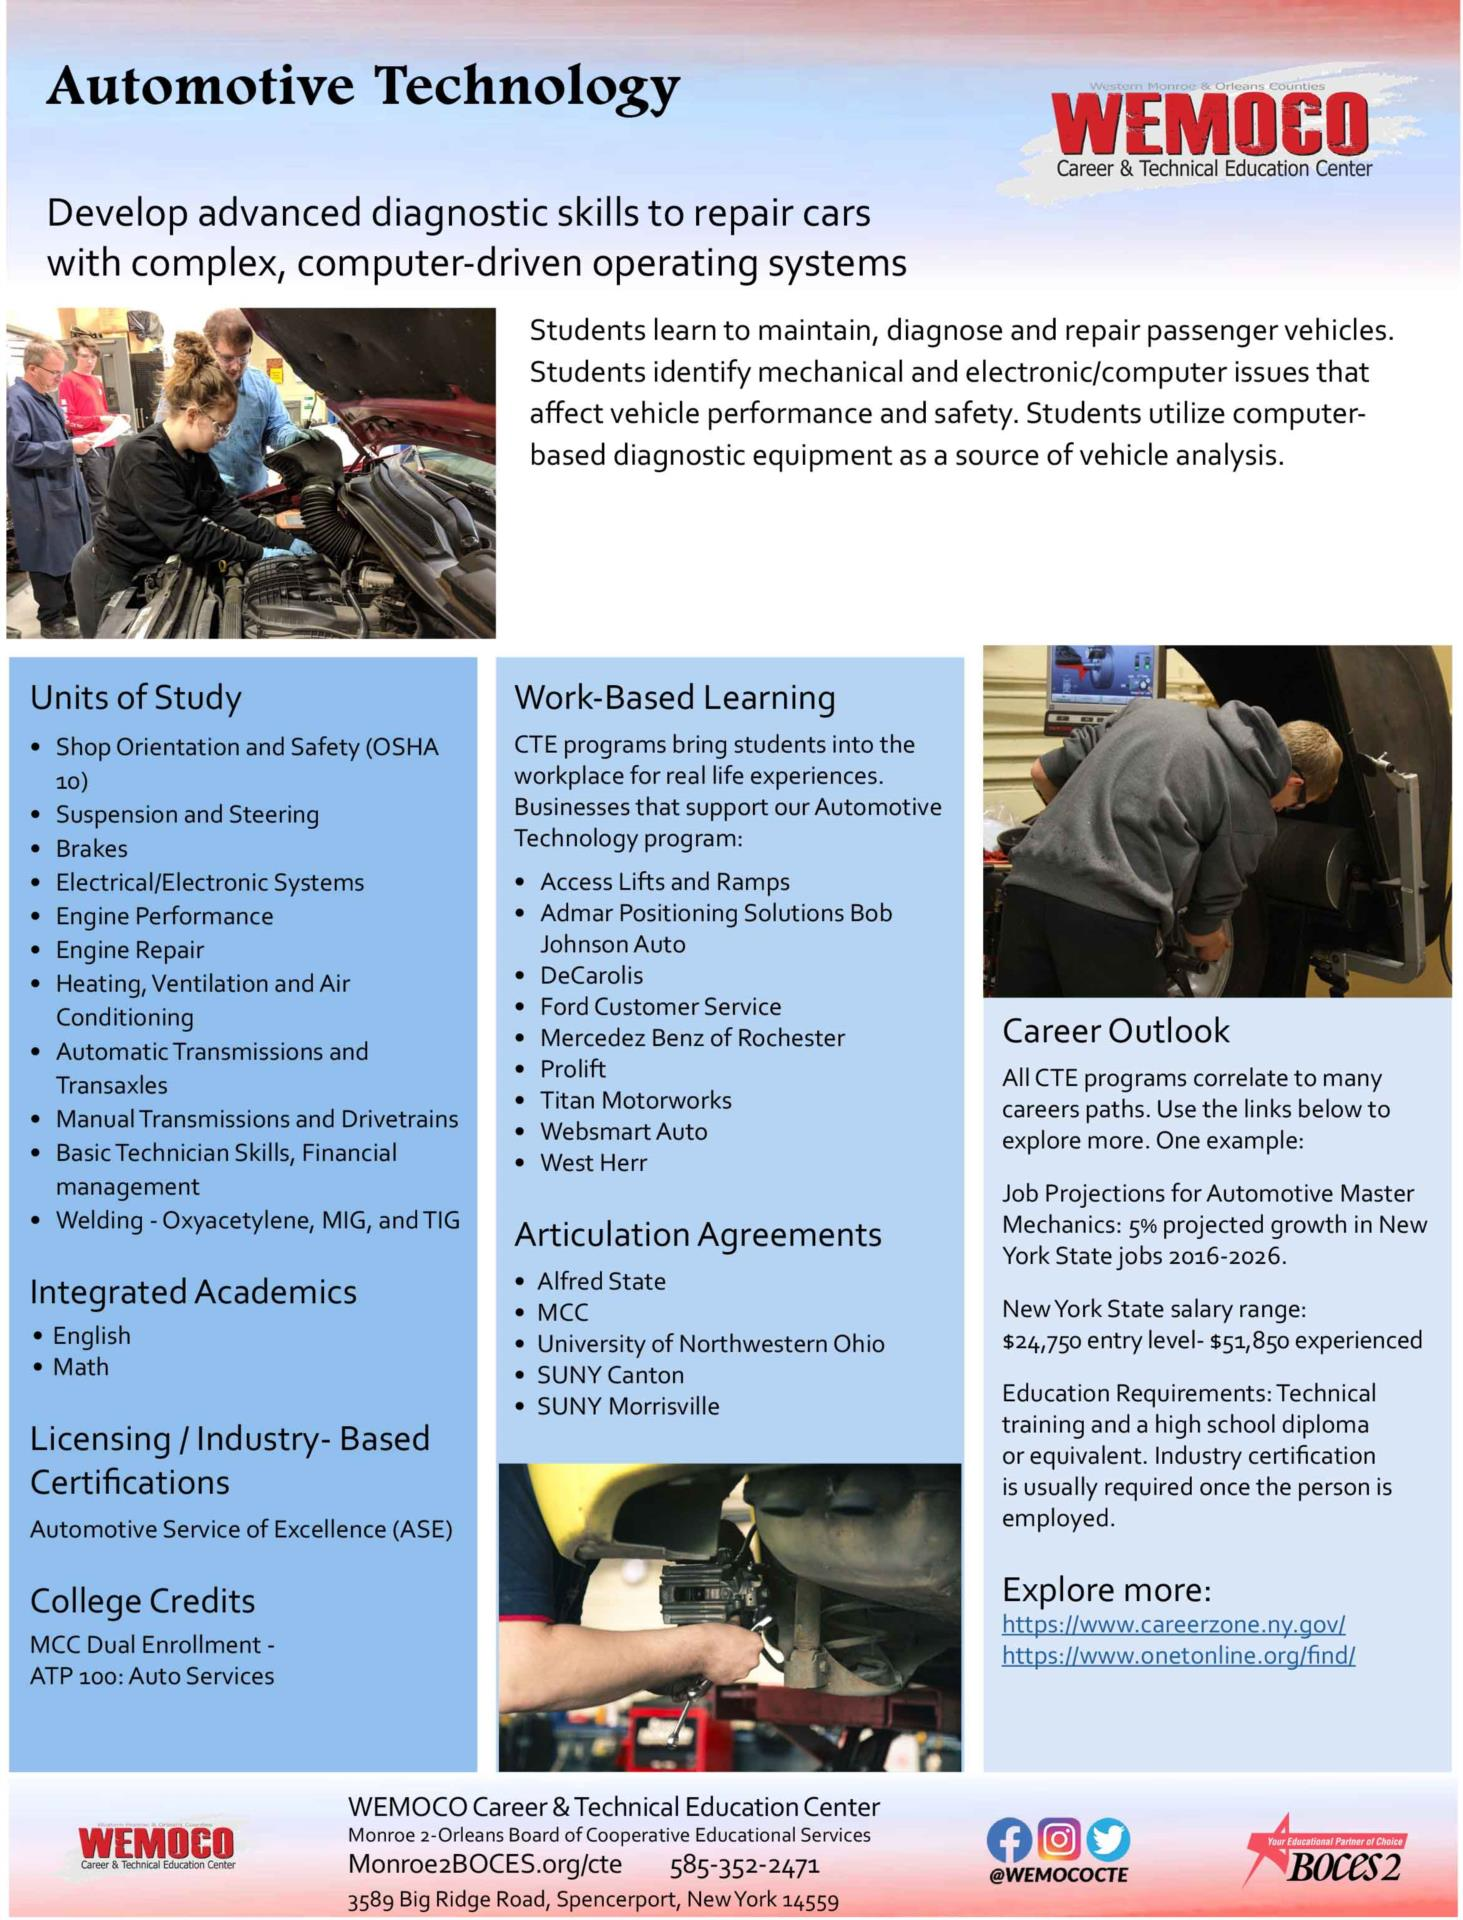 Download a PDF overview of the Automotive Technology program information